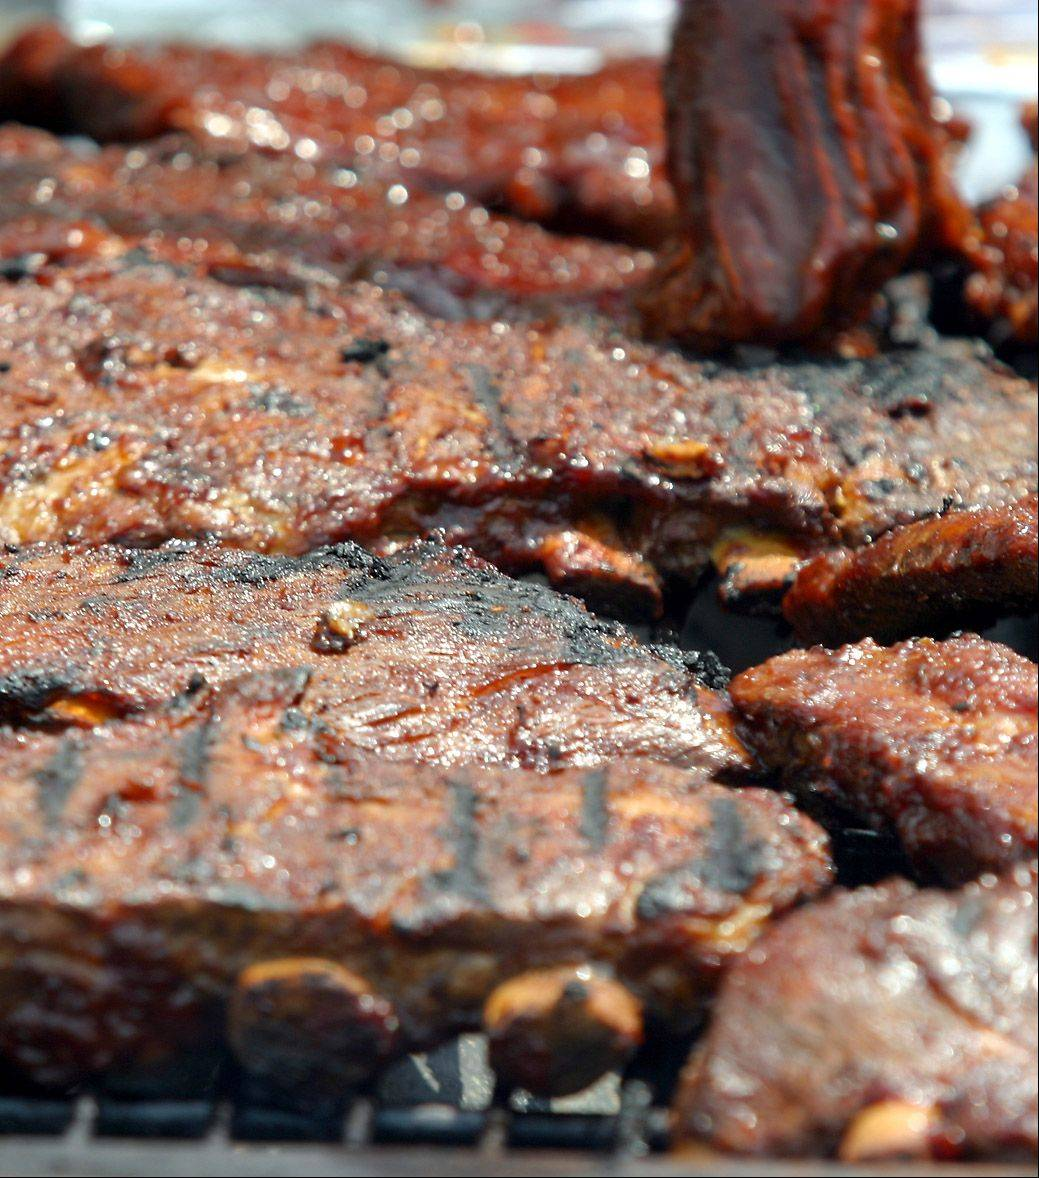 Naperville Ribfest serves up ribs, music and more for a cause